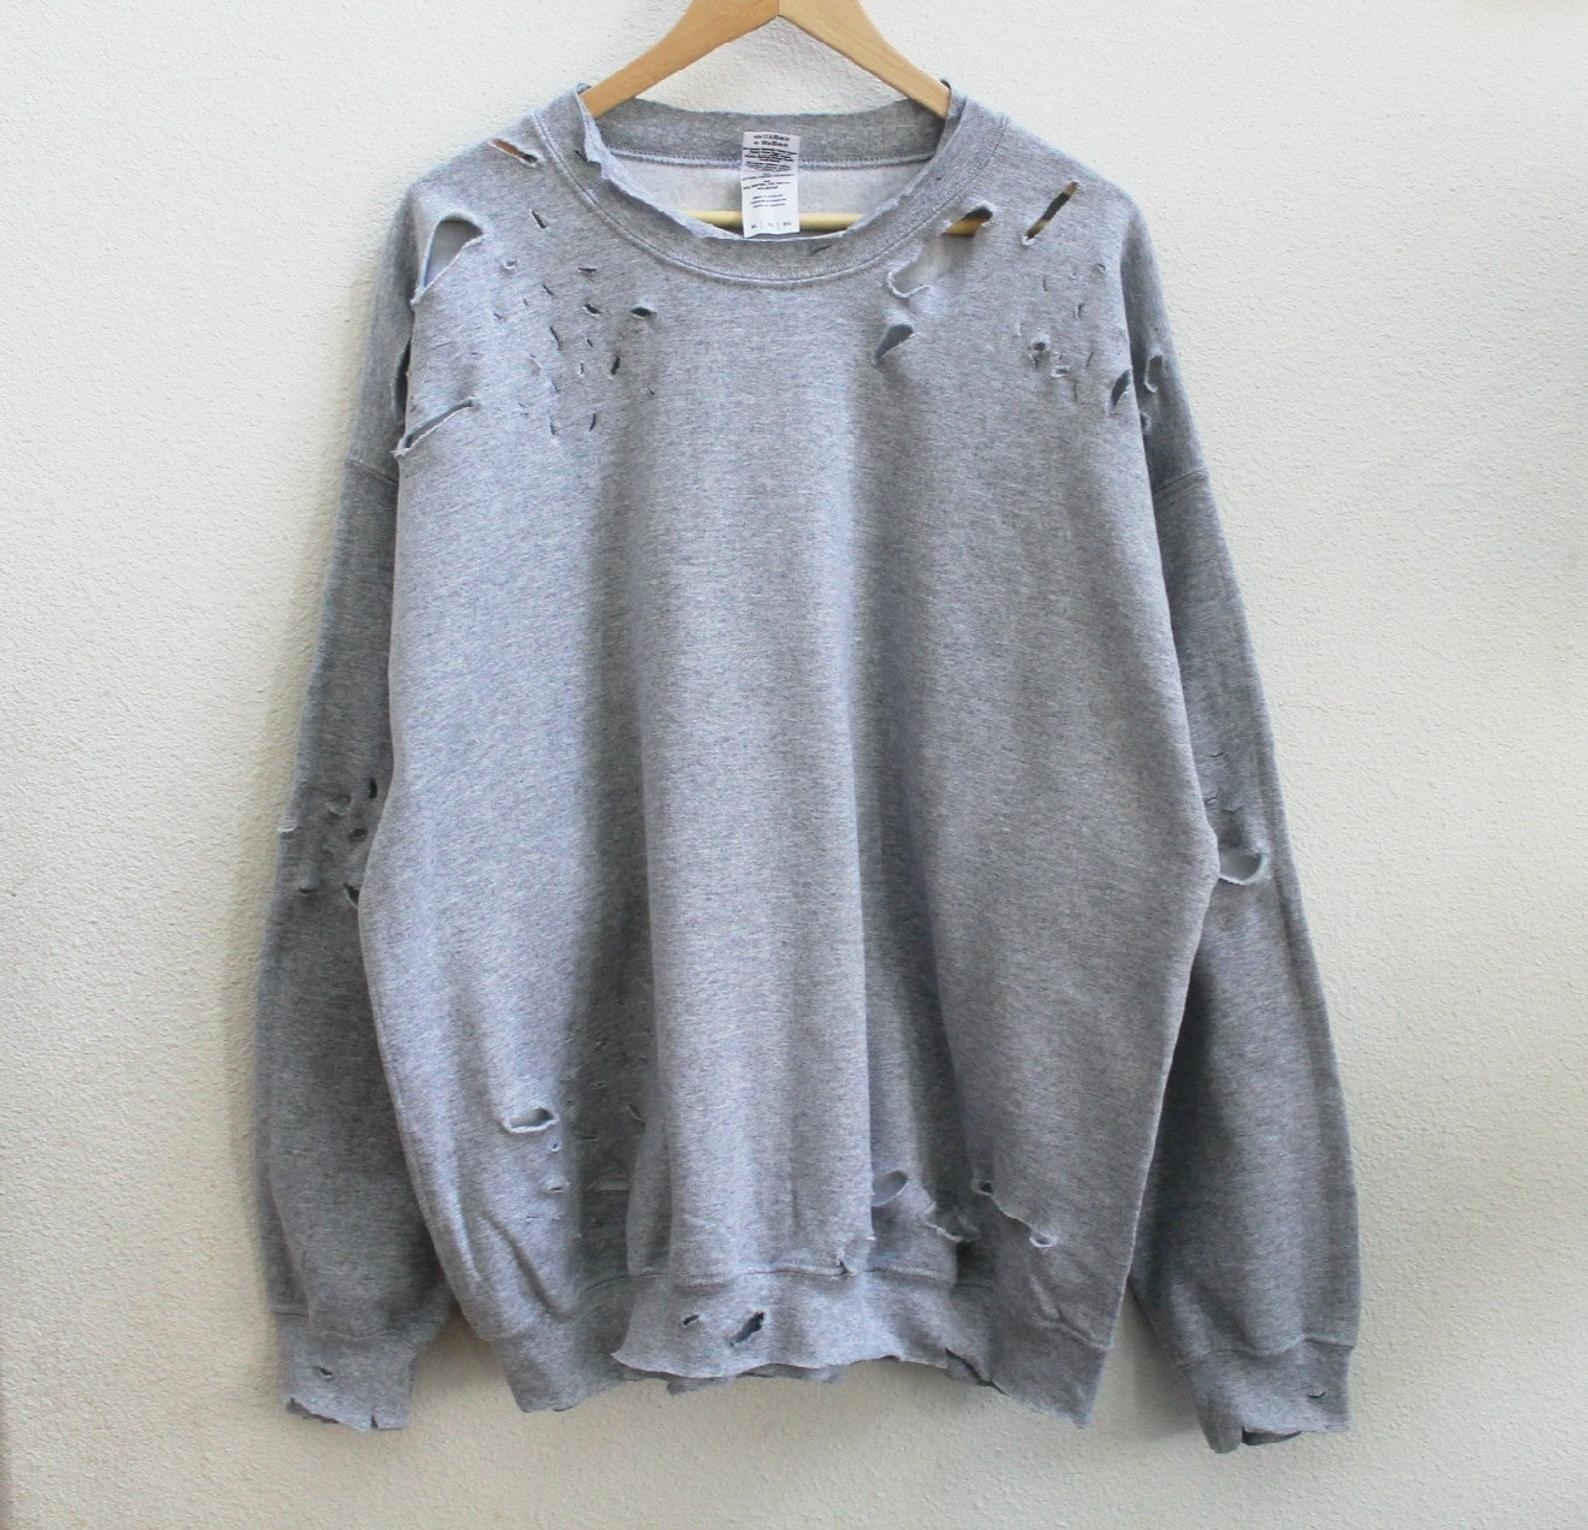 The grey sweatshirt with tears in the sleeves, hem, and neck